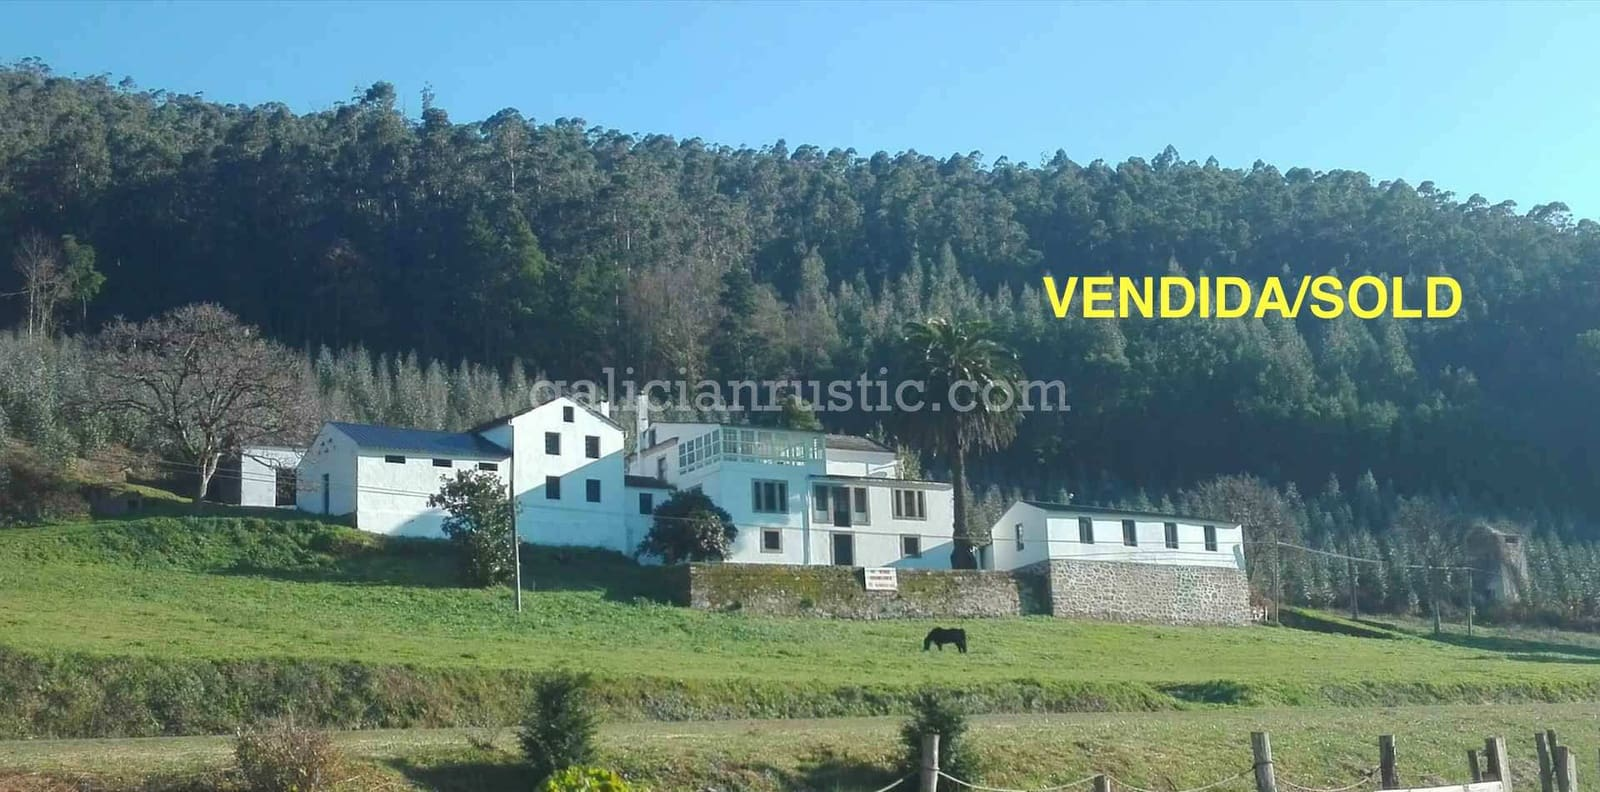 7 bedroom Finca/Country House for sale in Alfoz - € 260,000 (Ref: 4580490)